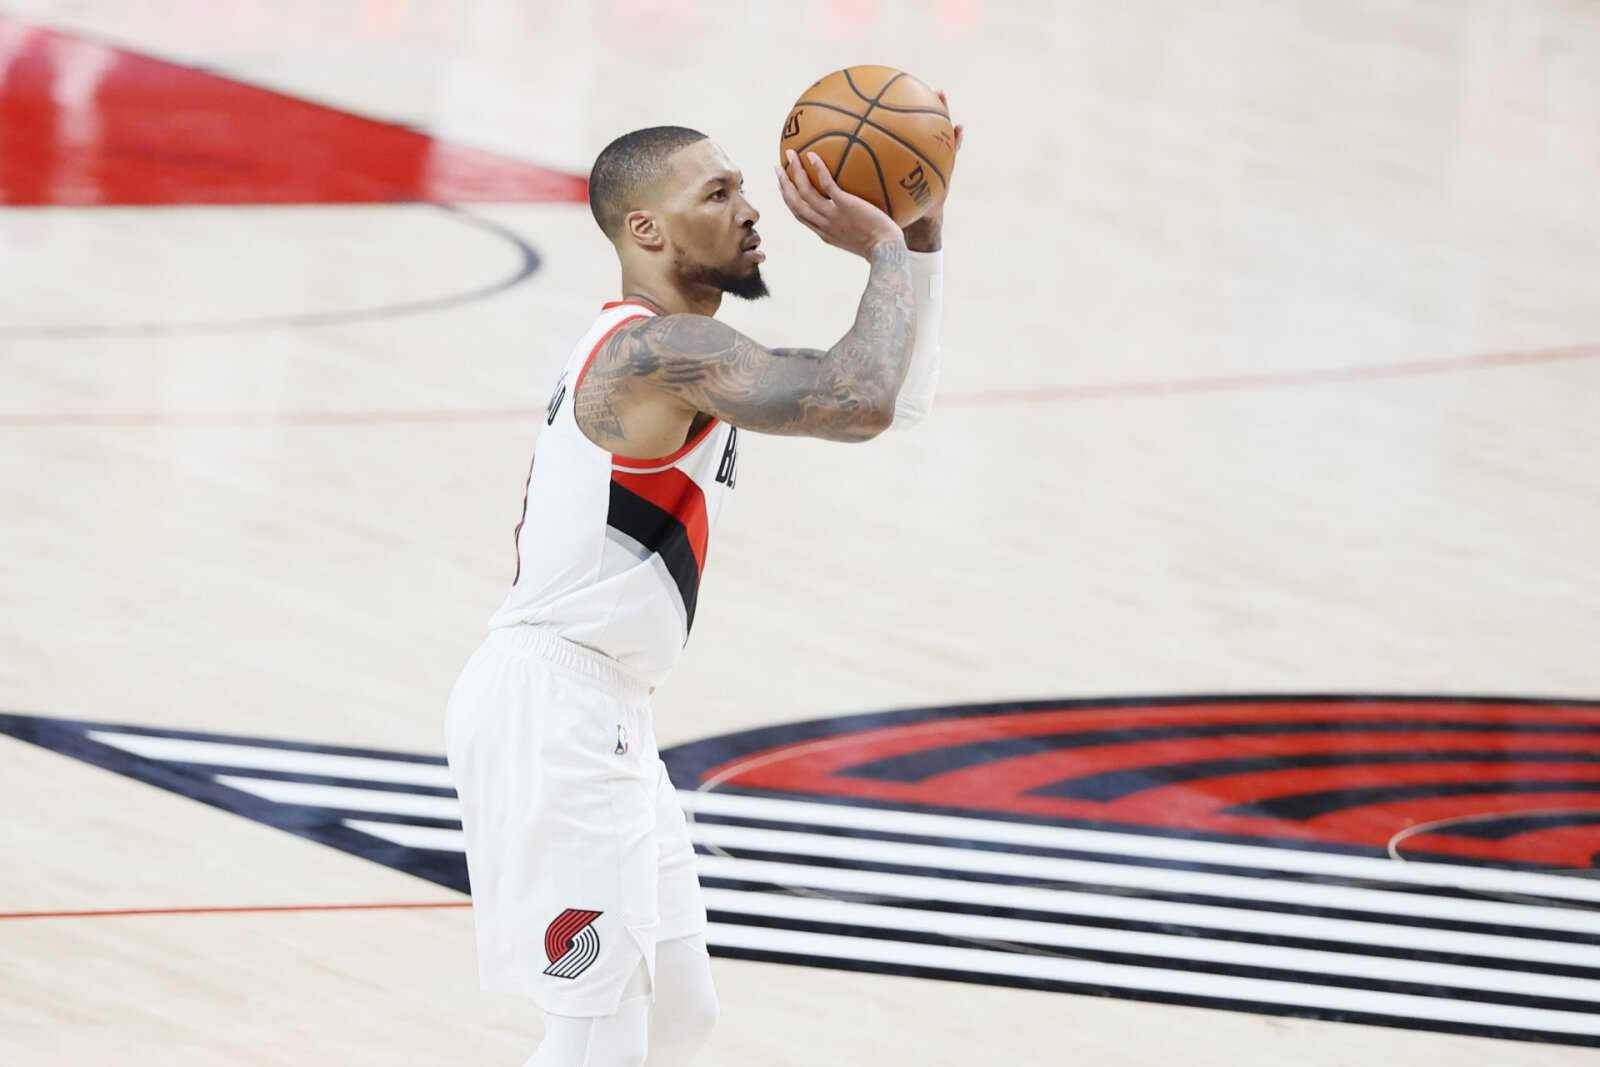 'It's Taken Him to the Superstar Level': Warriors 'Draymond Green förklarar hur Damian Lillard förvandlas